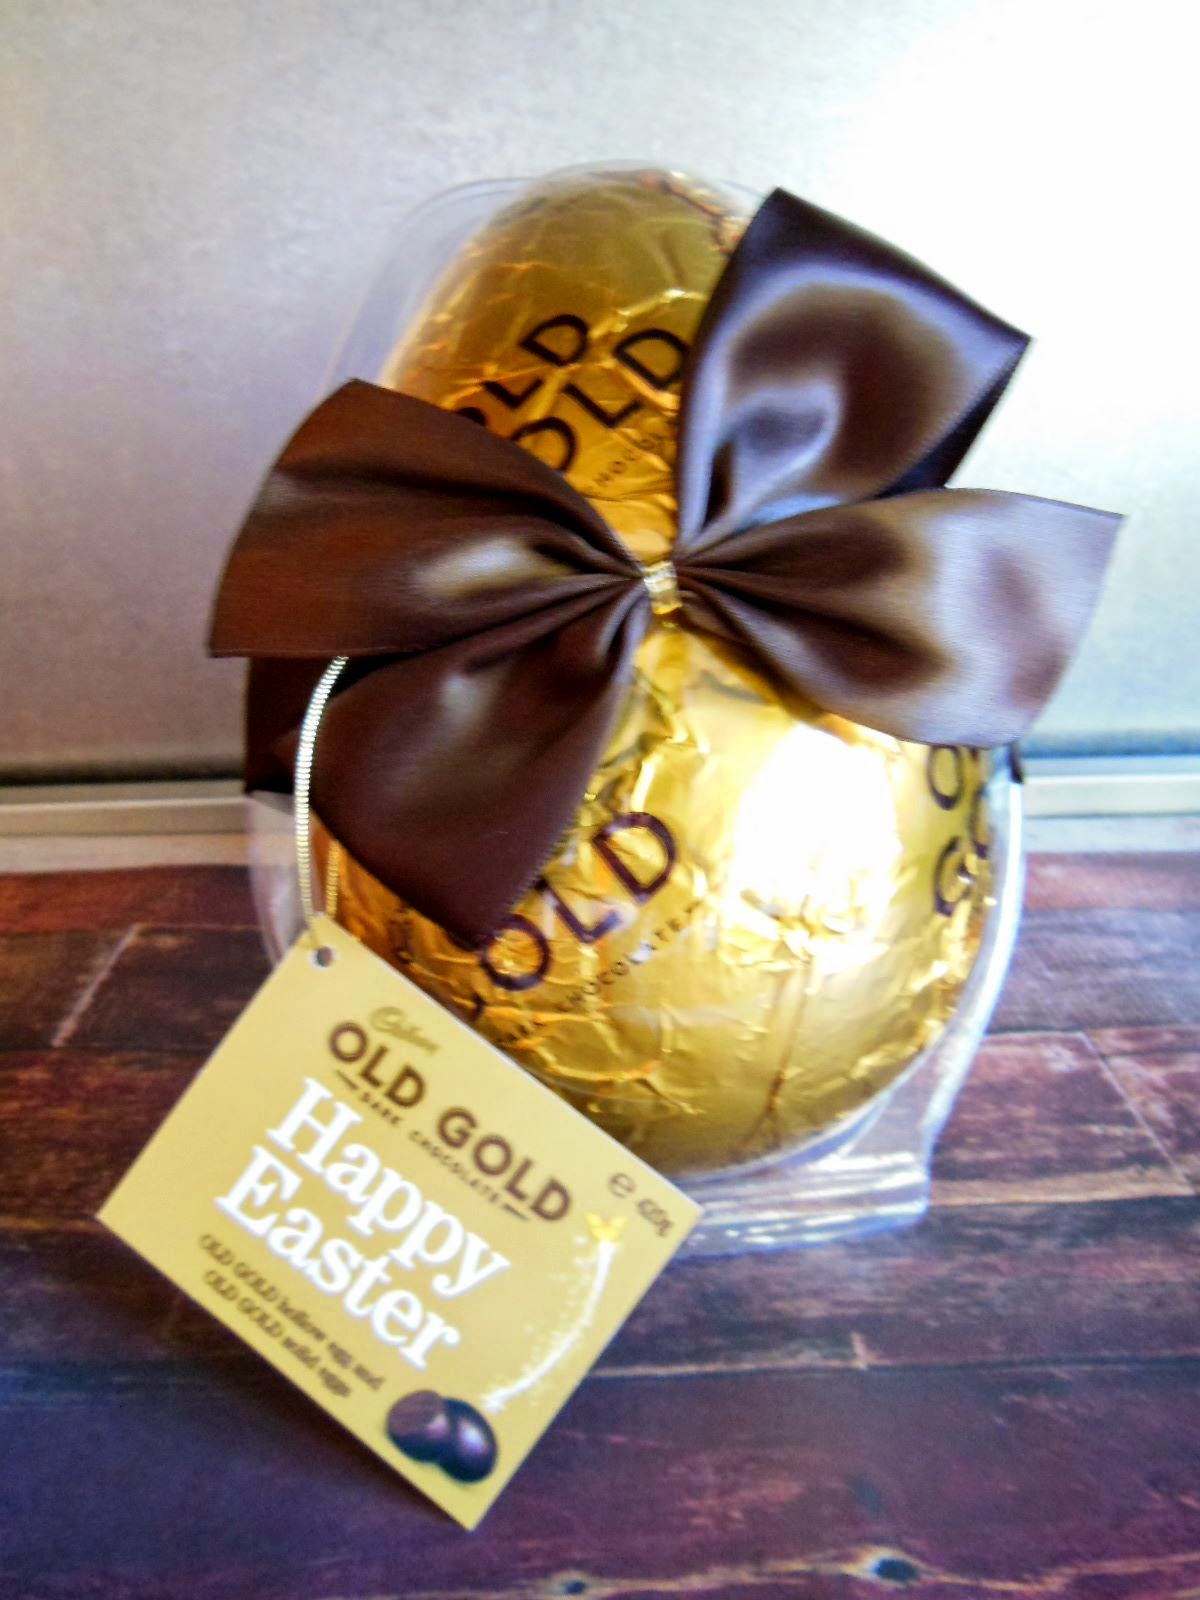 Easter 2015 with cadbury the beauty lifestyle hunter another new launch is the cadbury crme egg jar a plastic shell shaped like a crme egg that contains a mix of delicious cadbury crme eggs cadbury negle Image collections